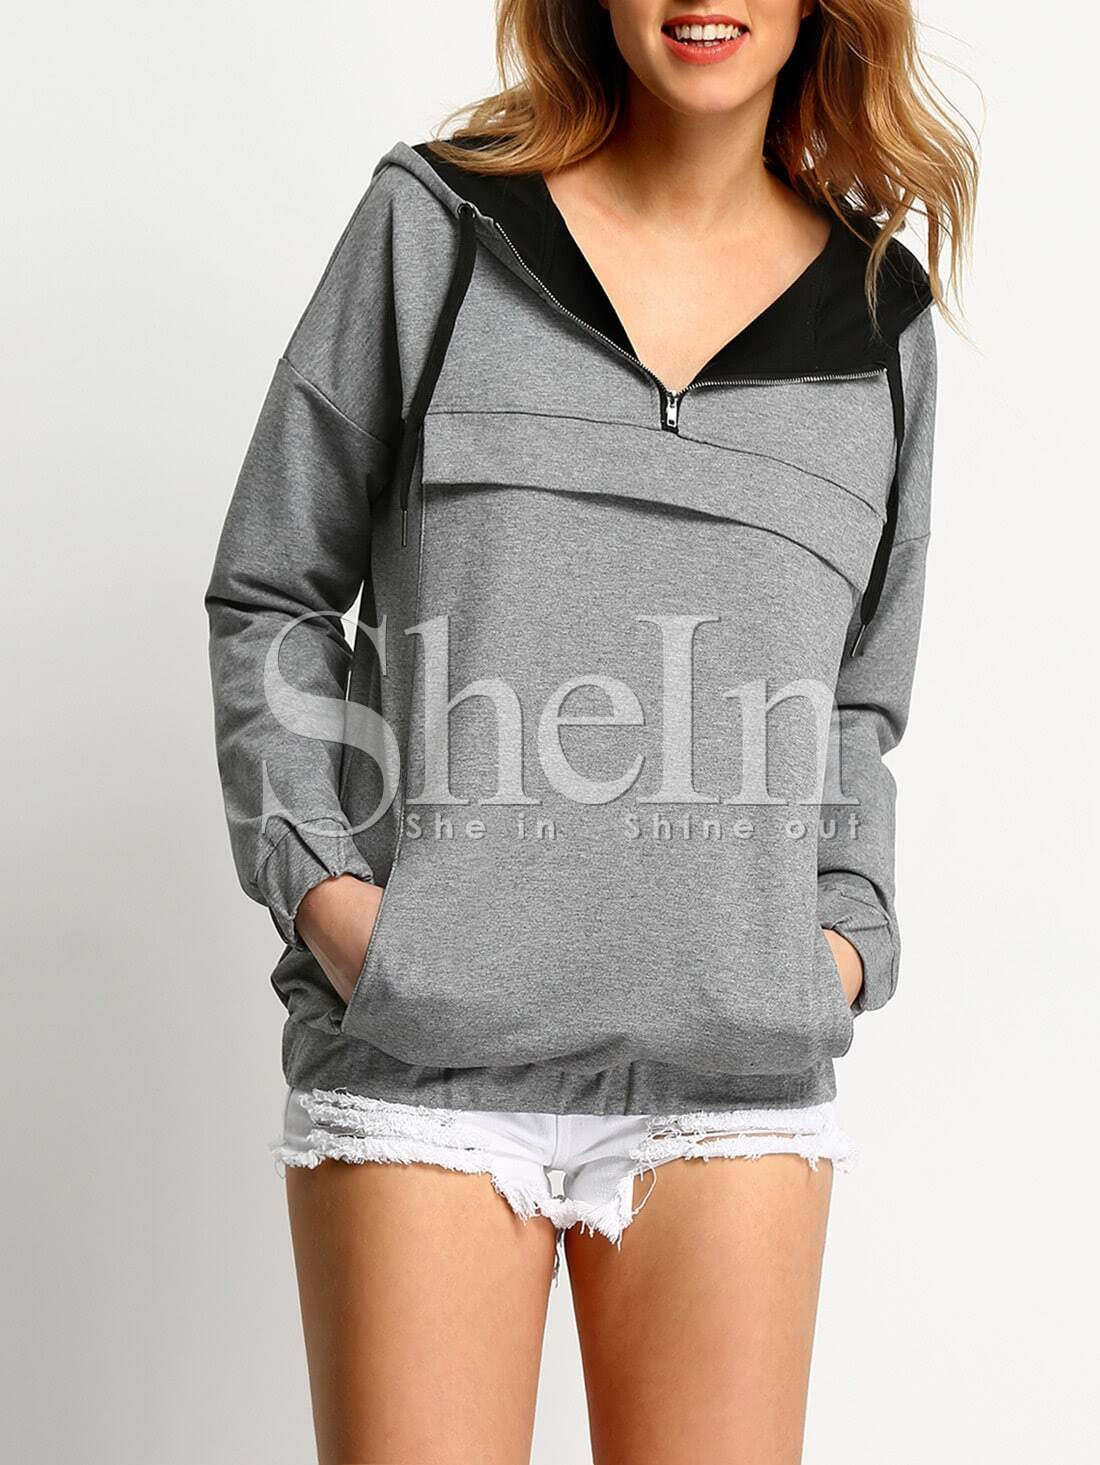 Grey Hooded Zipper Sweatshirt sweatshirt151008501